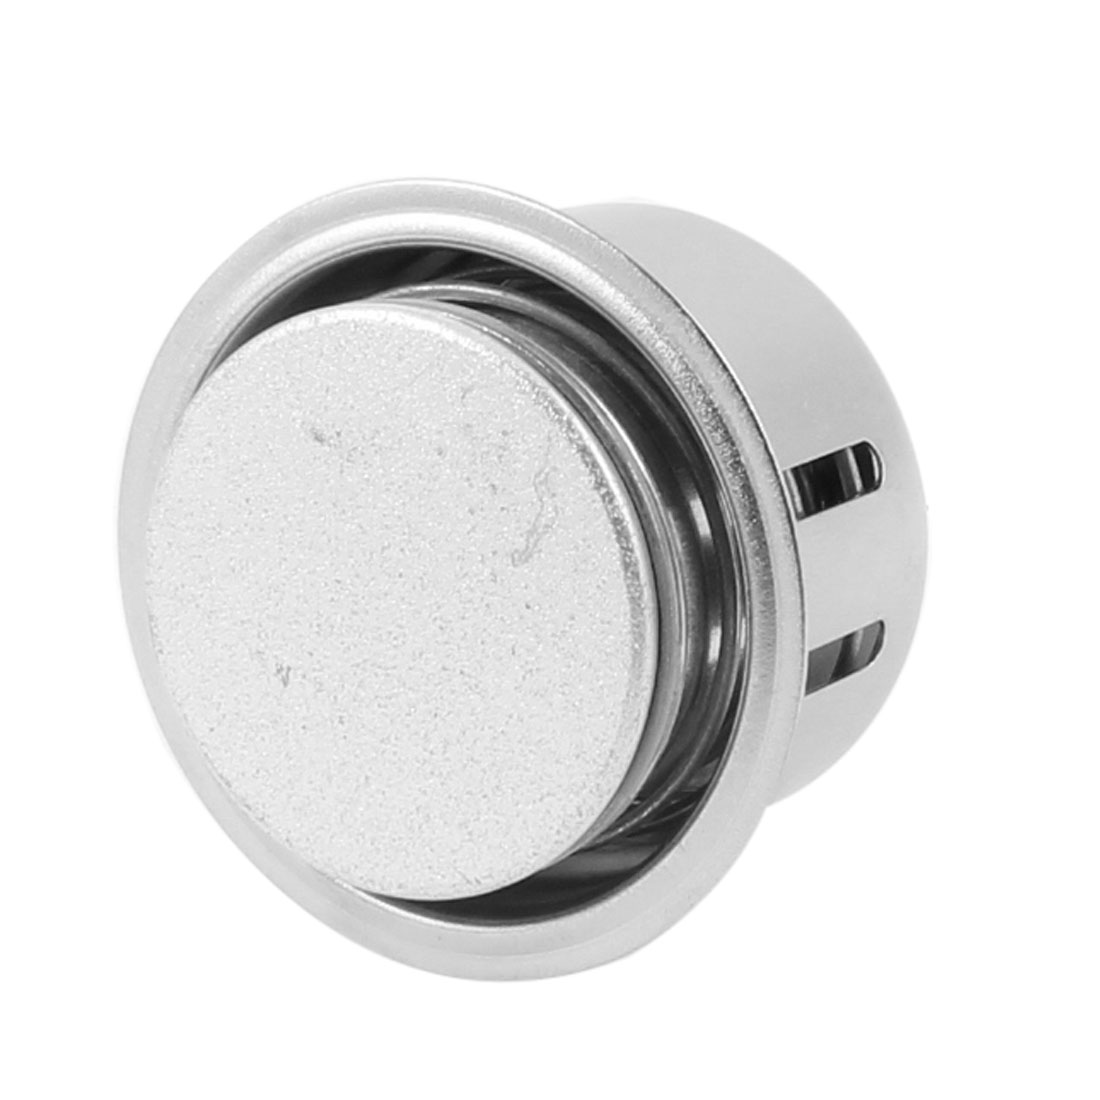 Stainless Steel Interrupt Circuit Electric Cooker Magnet Insulated Device